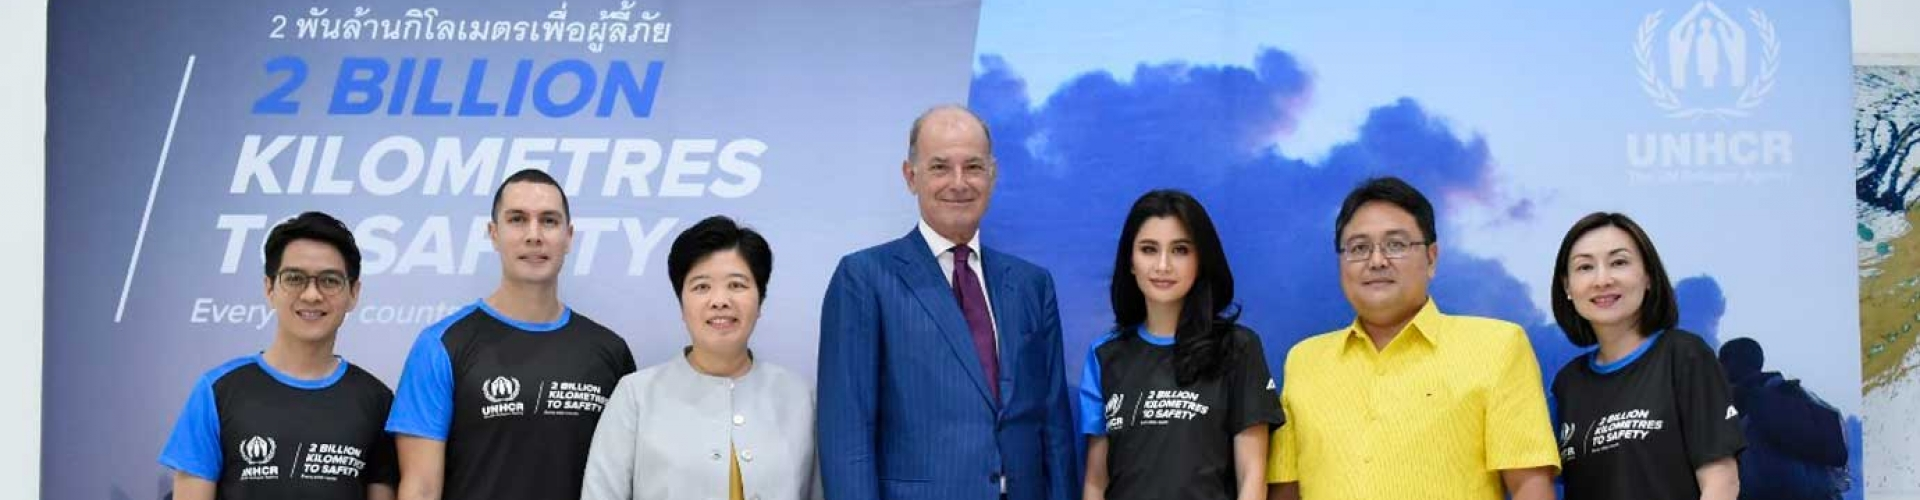 """UNHCR invites Thai public to step in solidarity with refugees in """"2 Billion Kilometres to Safety"""" Campaign"""